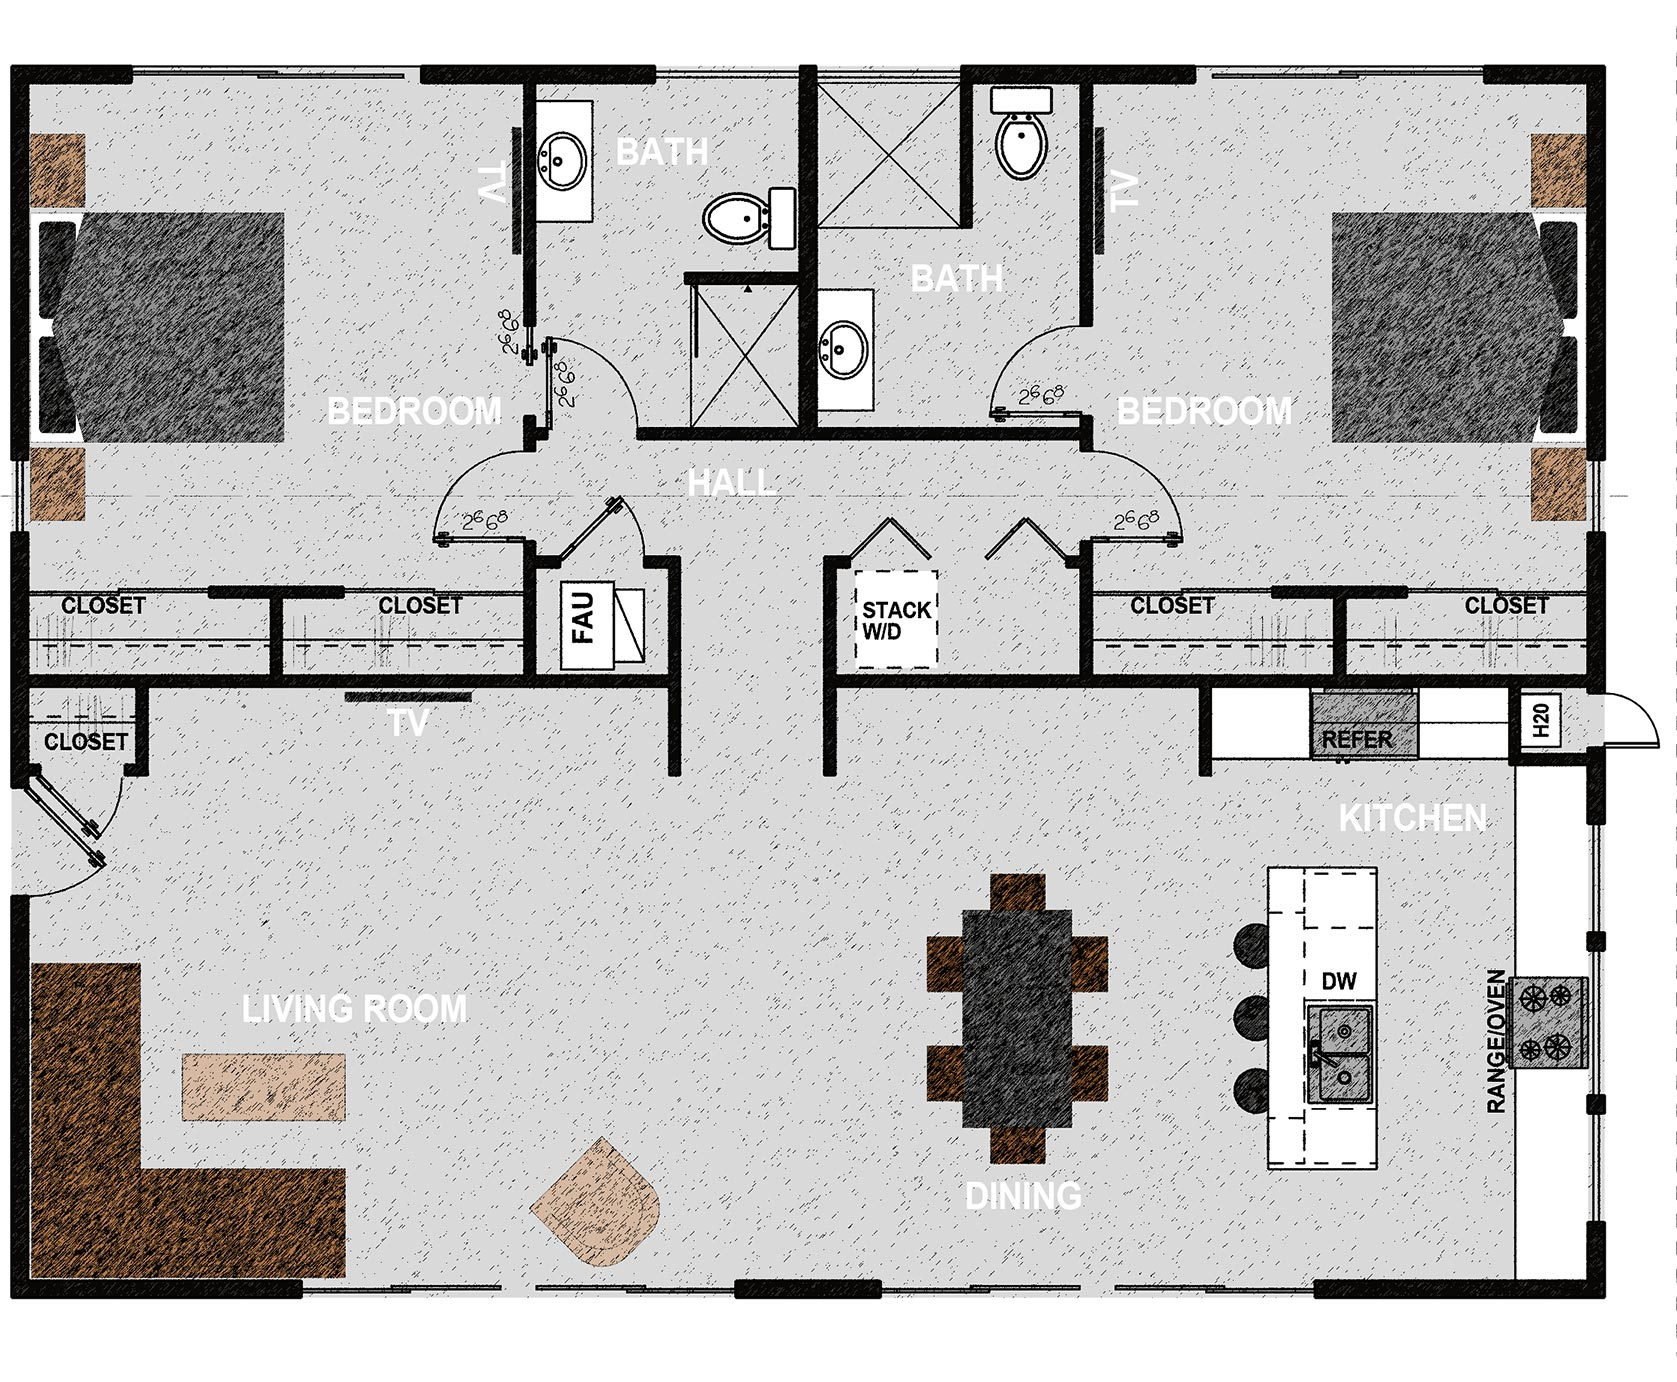 The HM1496 - HM1496 consists of two bedrooms, two bathrooms, laundry room and open kitchen, dining room and living room. It offers 1,496 square feet of conditioned living space. Exterior dimensions are approximately 44' x 34'